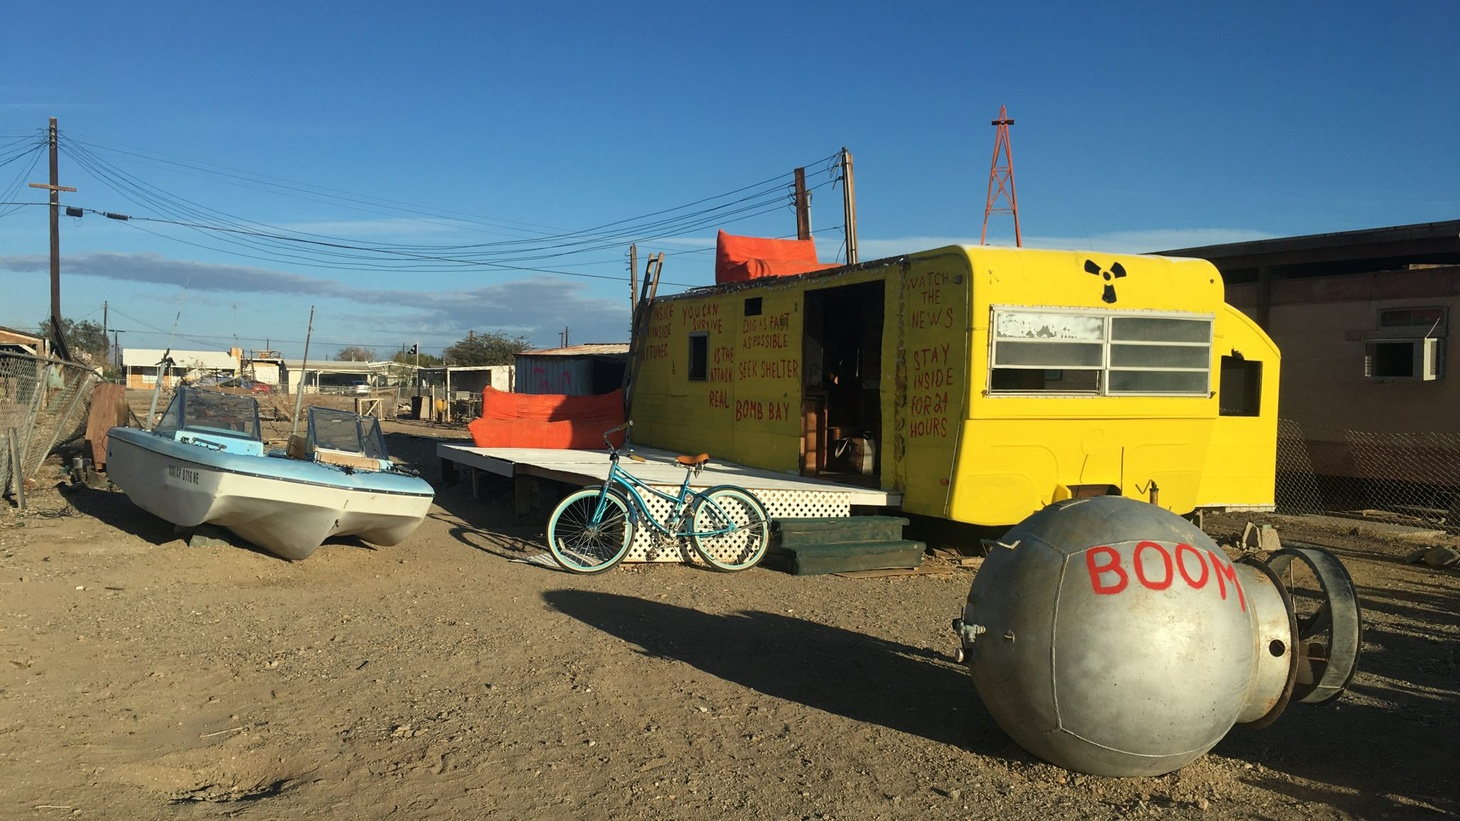 """Facebook has tweaked its design to give users clearer control over their information. Can these changes help the social media giant become """"friends"""" again with its users? The Bombay Beach Biennale has come to the Salton Sea."""